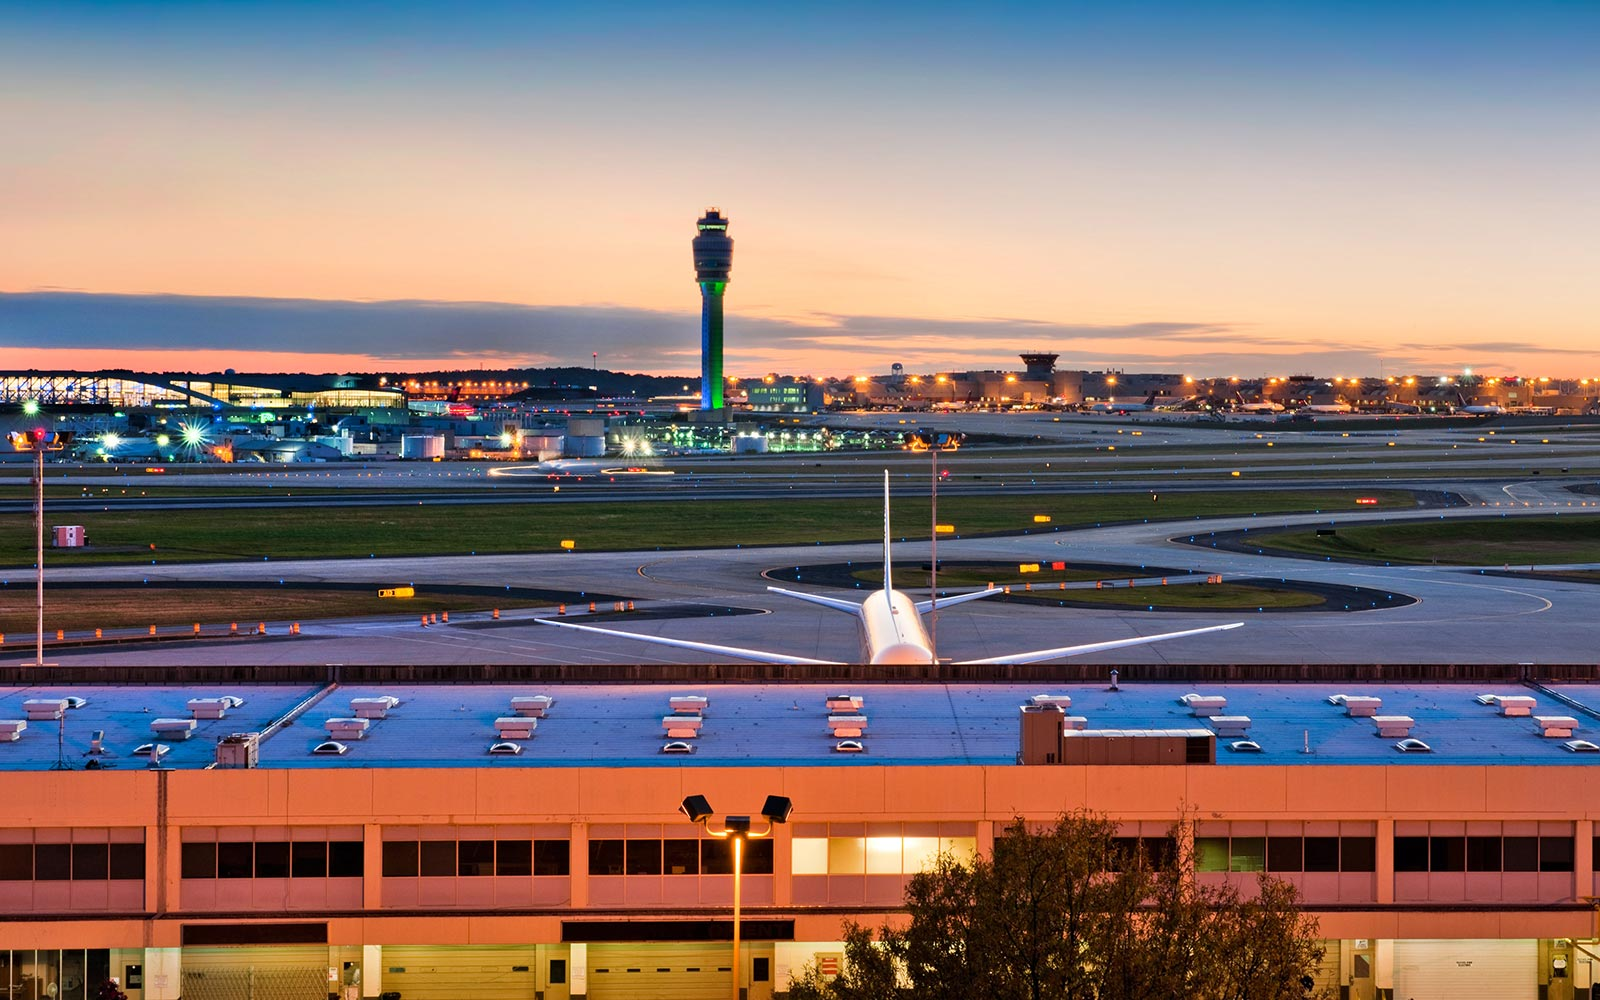 The Busiest Airport in the U.S. Is Considering Removing Parking